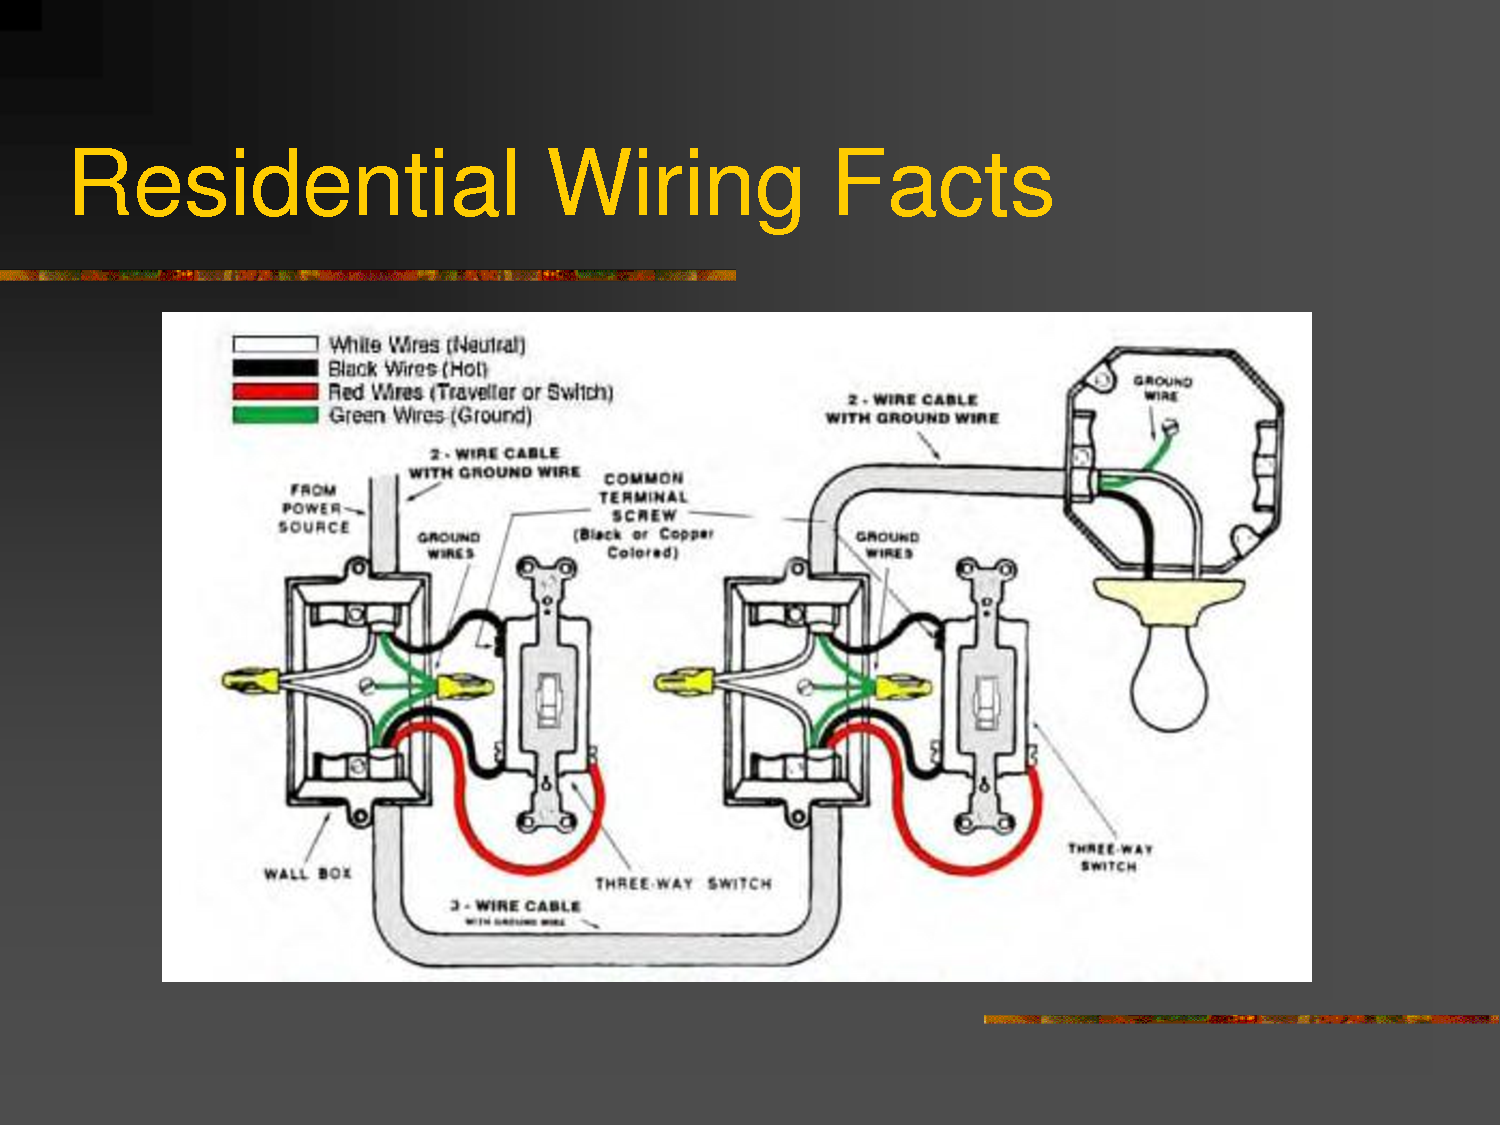 household electrical wiring diagrams wiring diagram sheet 4 best images of residential wiring diagrams house electrical [ 1500 x 1125 Pixel ]